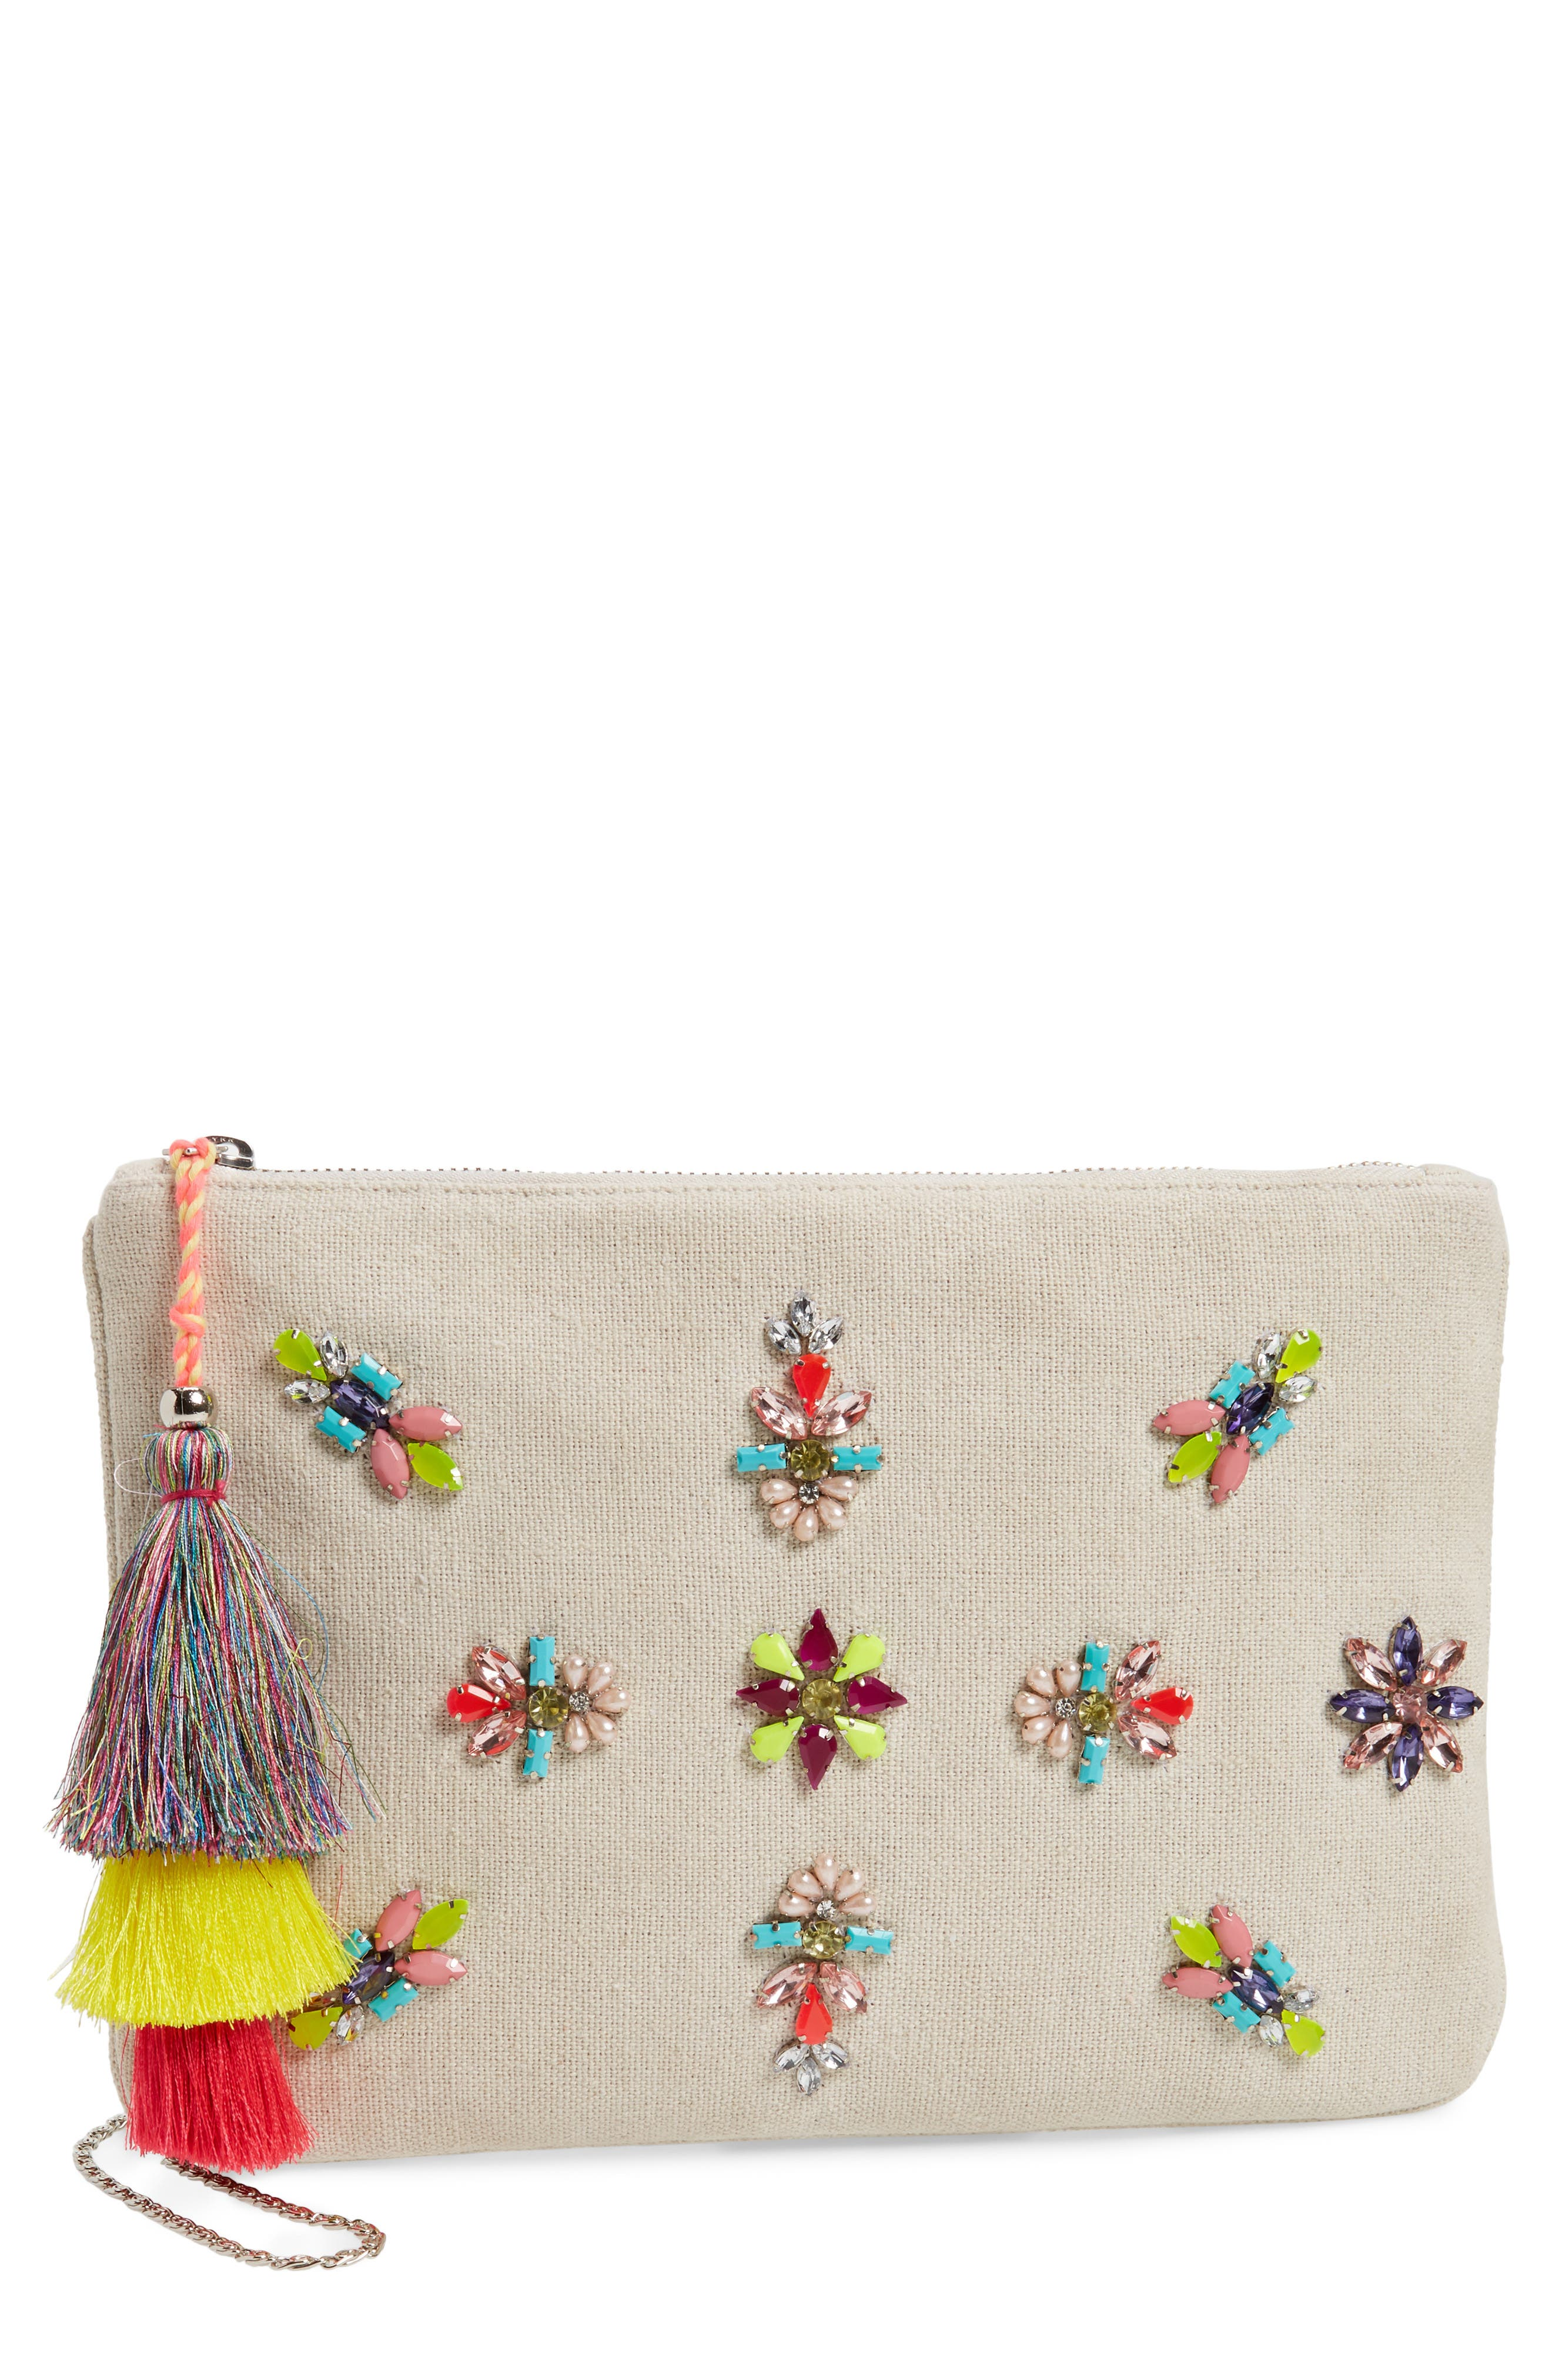 Rhinestone Appliqué Crossbody Clutch,                         Main,                         color, 250